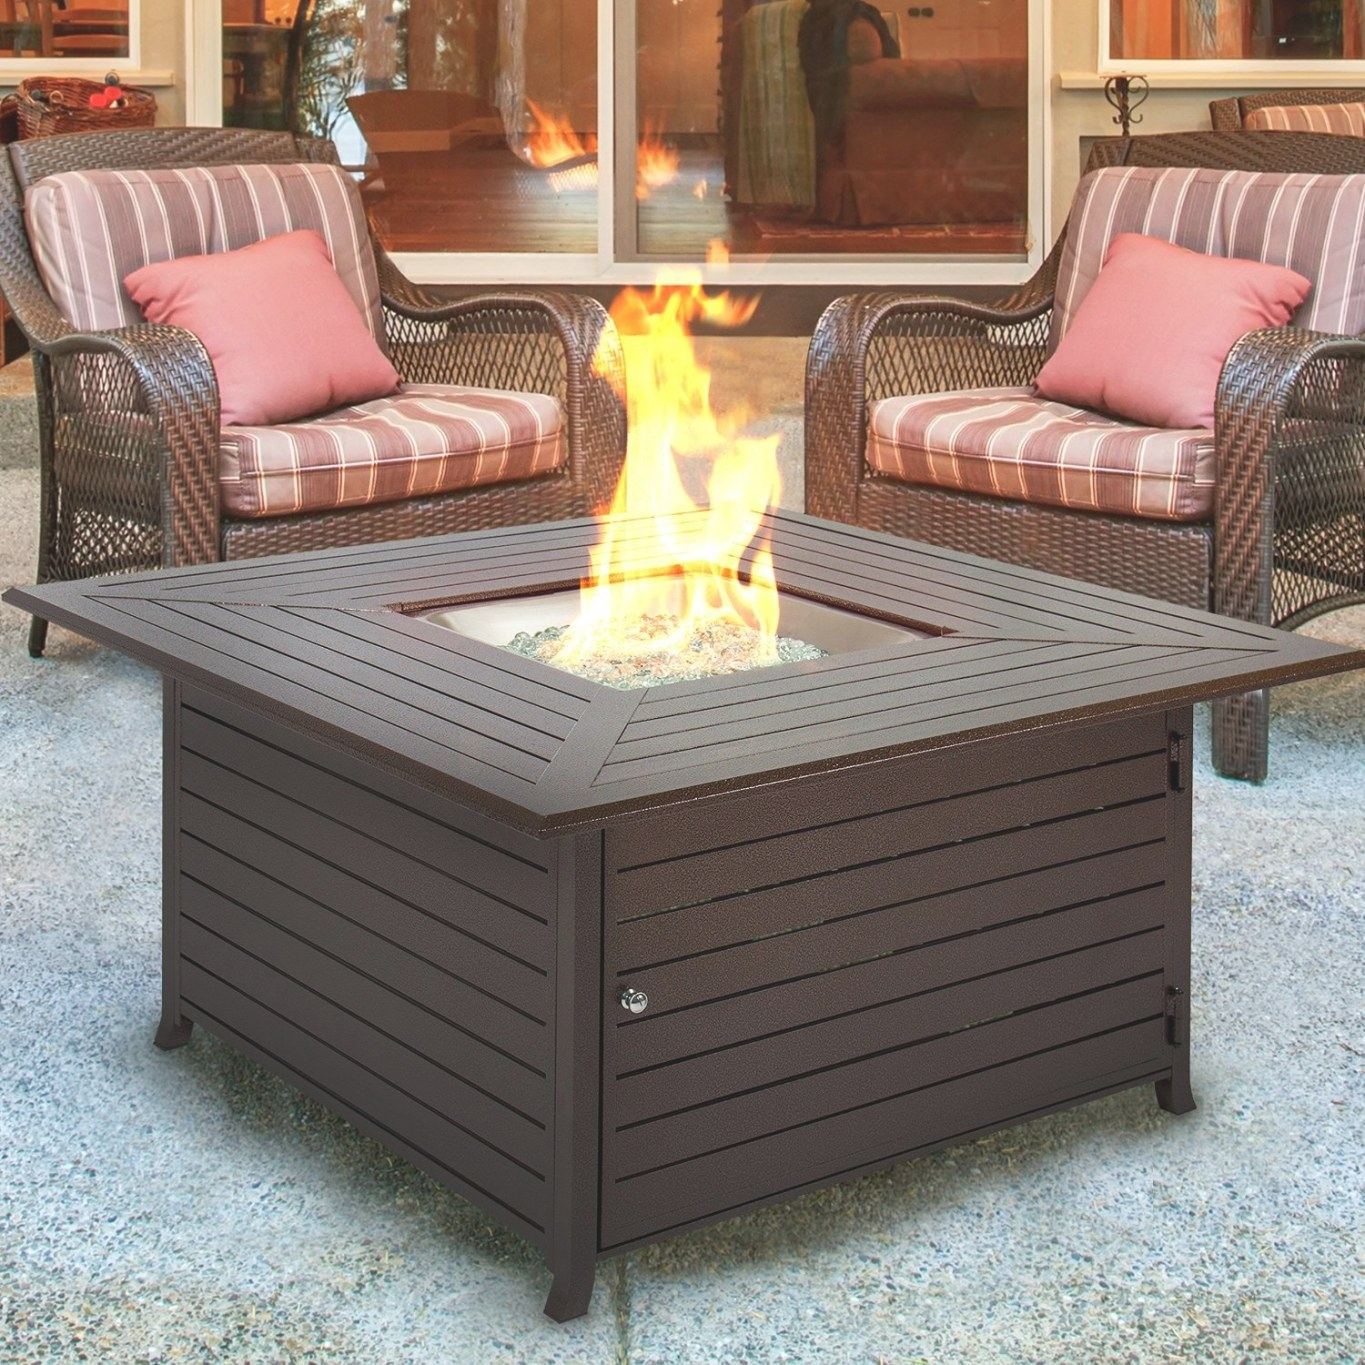 Bcp Extruded Aluminum Gas Outdoor Fire Pit Table With intended for Propane Fire Pit Table